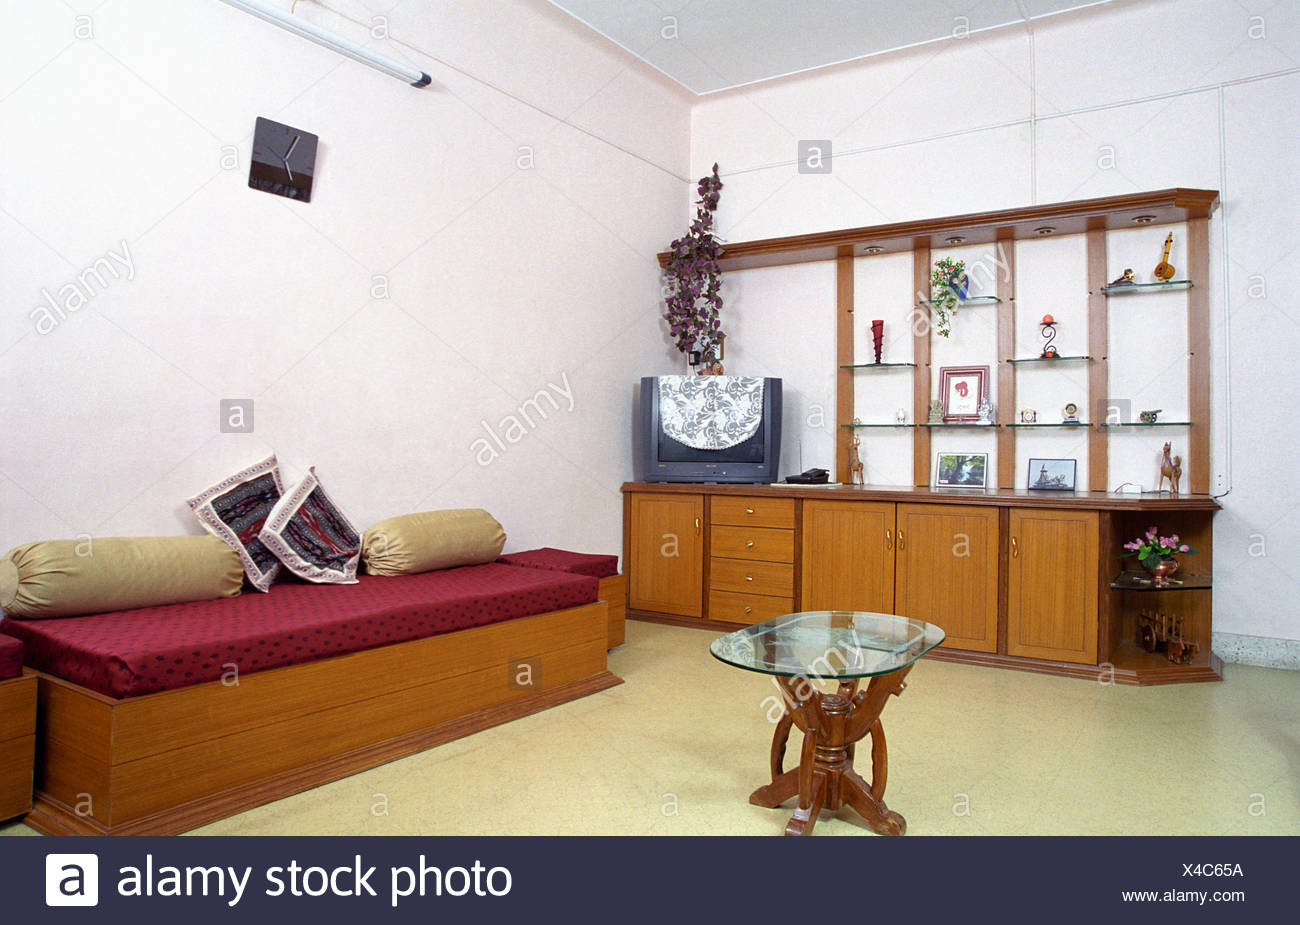 interior a living room with tradition indian seating arrangement